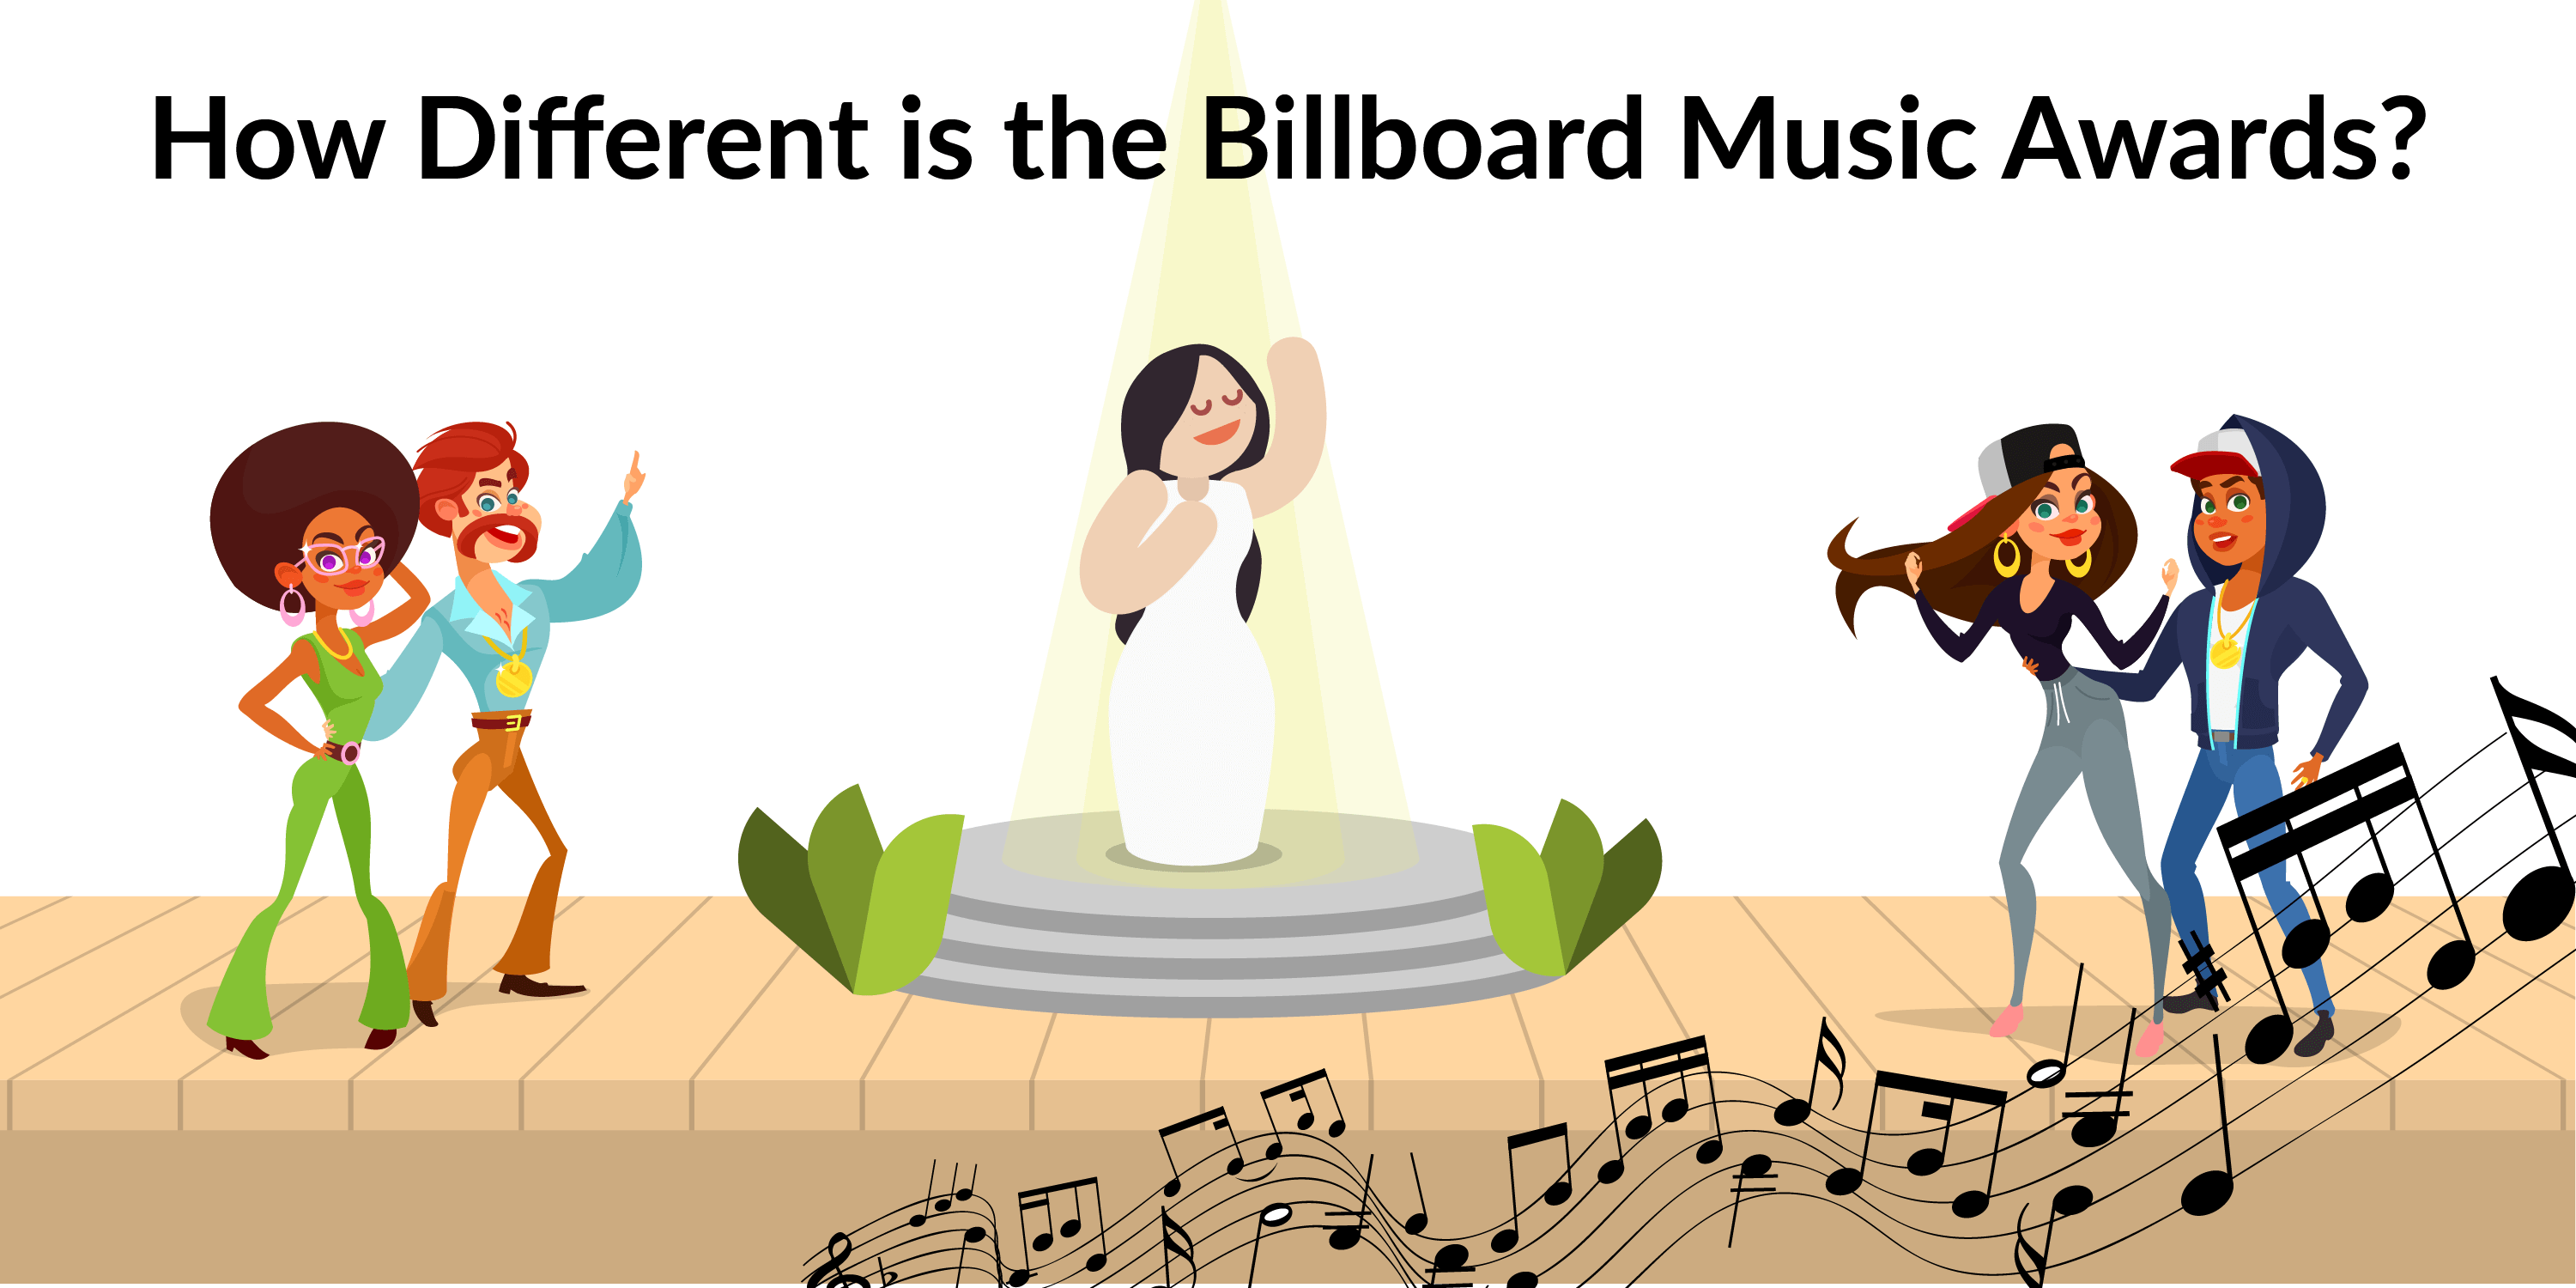 How Different is the Billboard Music Awards?